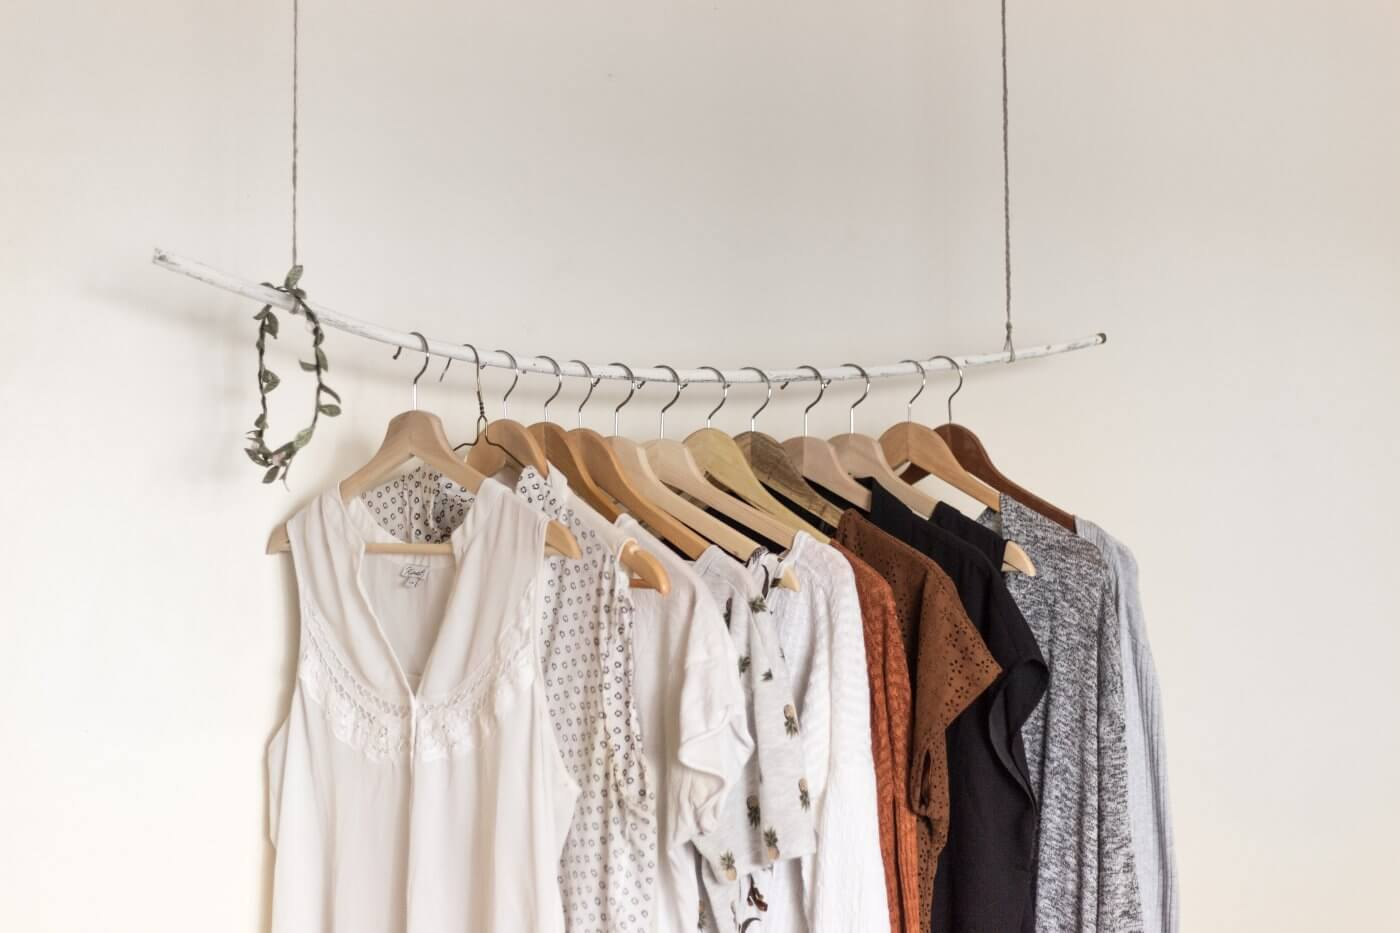 Hanging Clothes | The Mustcard